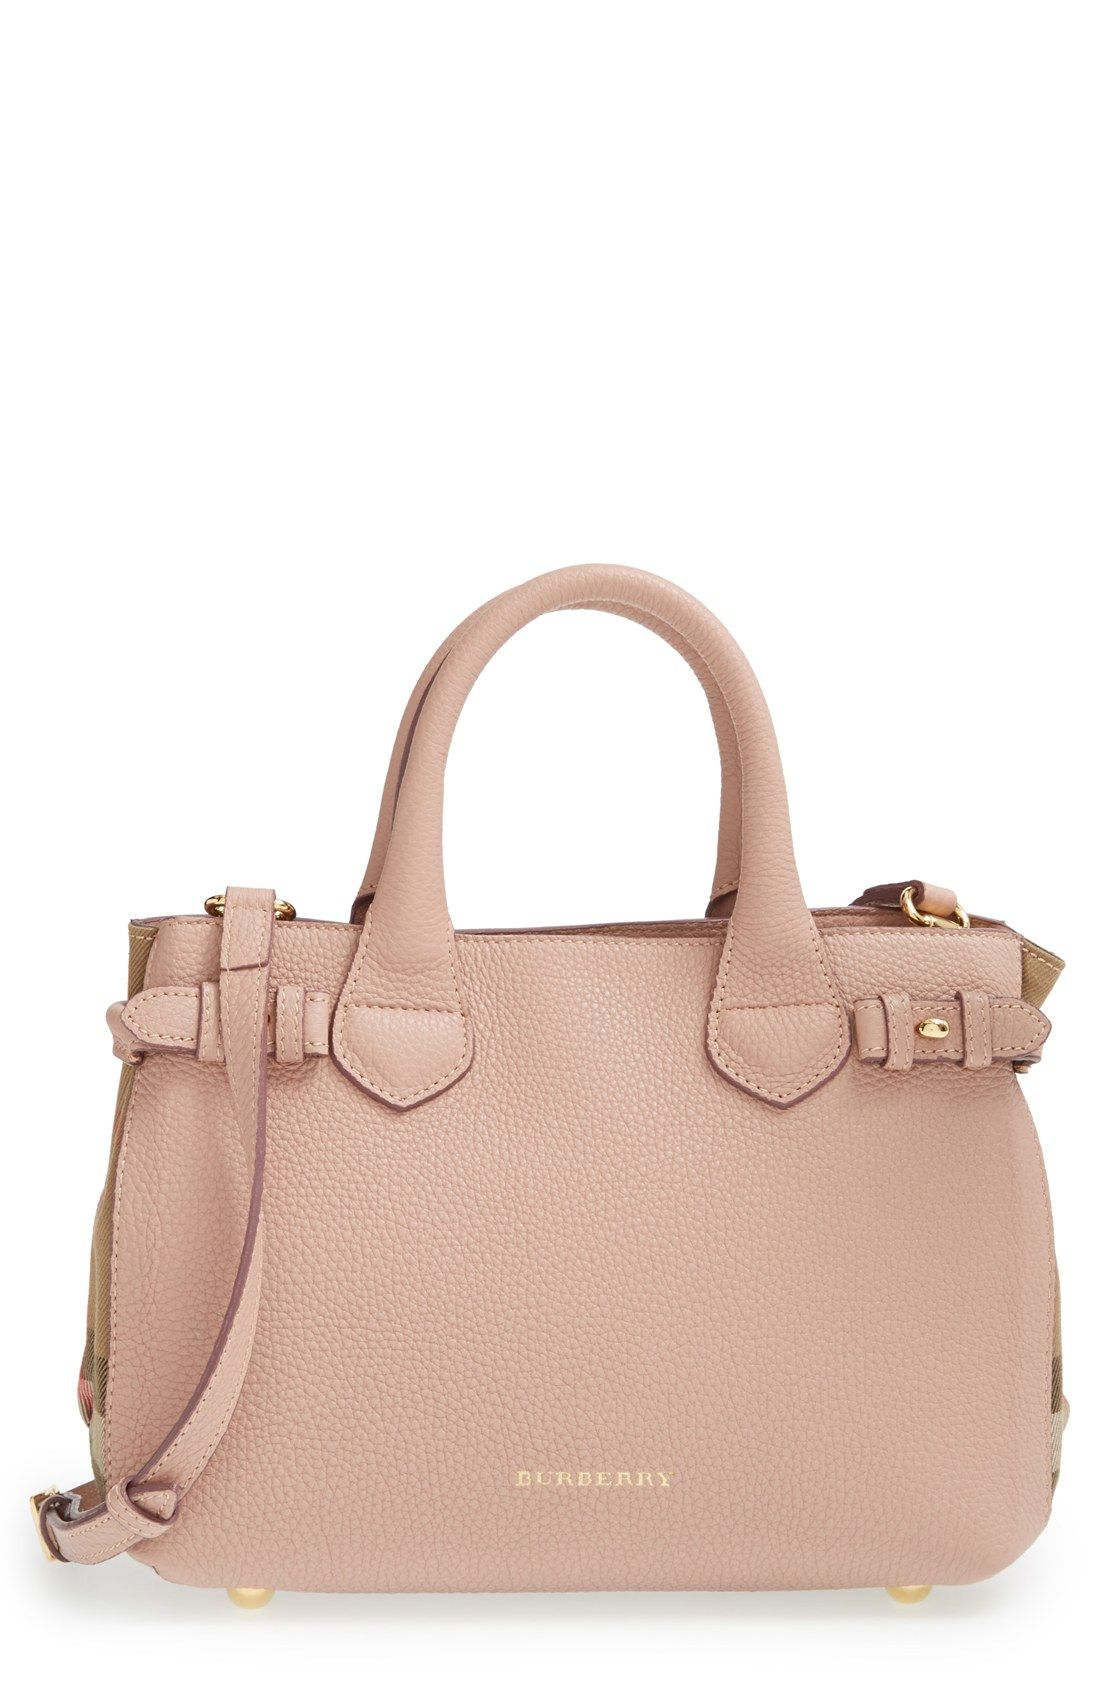 99e8f4e59dc The side buckle fastenings add a bit of equestrian-inspired style to this  stunning compact Burberry tote.